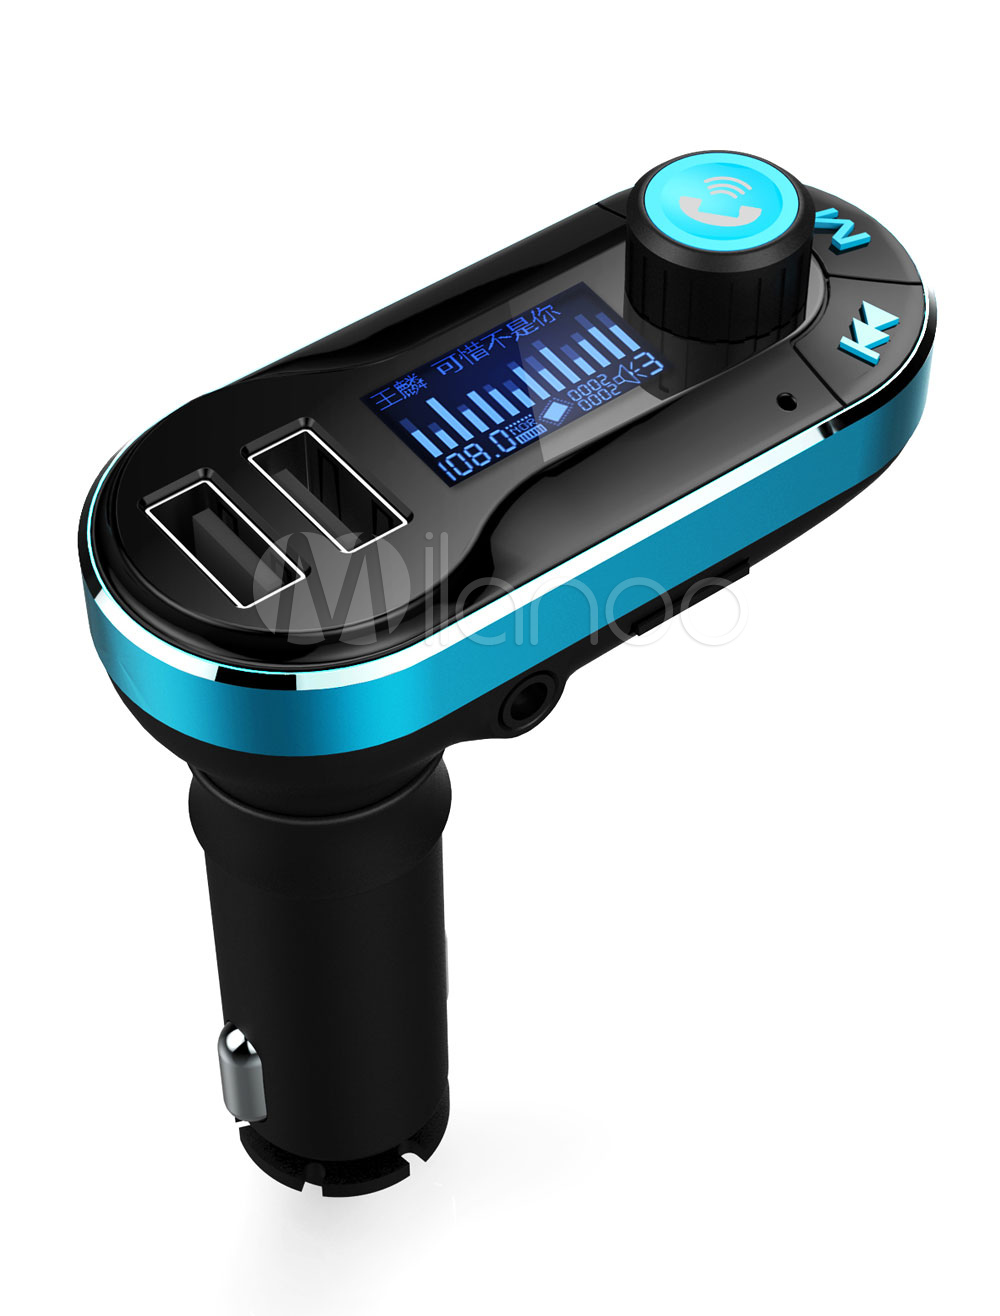 Buy USB Car Charger Qualcomm Quick Charge 2.0 Dual USB Ports Music Control Car Electronics Kit for $16.99 in Milanoo store